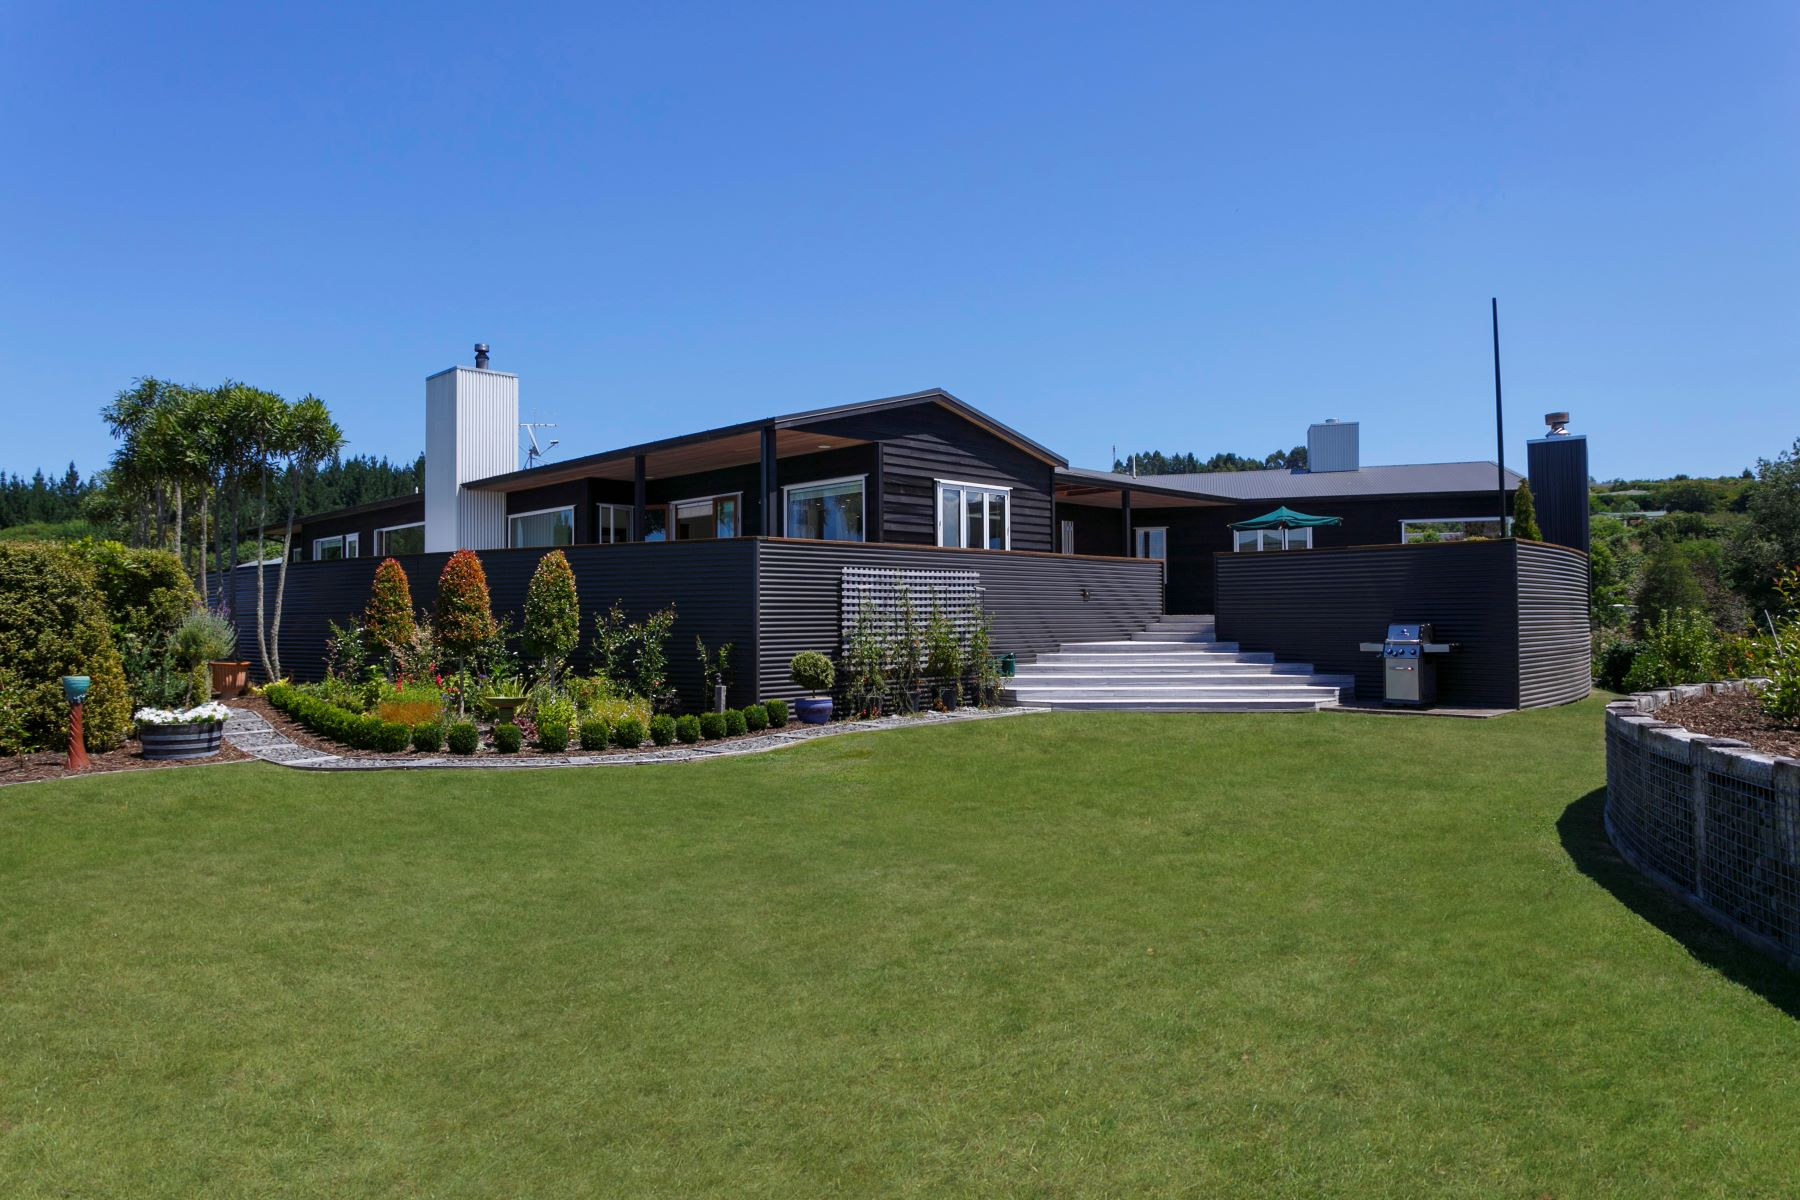 Single Family Homes for Sale at 7 Cameron Drive, Acacia Bay, Taupo 7 Cameron Drive Acacia Bay Taupo, Waikato 3330 New Zealand